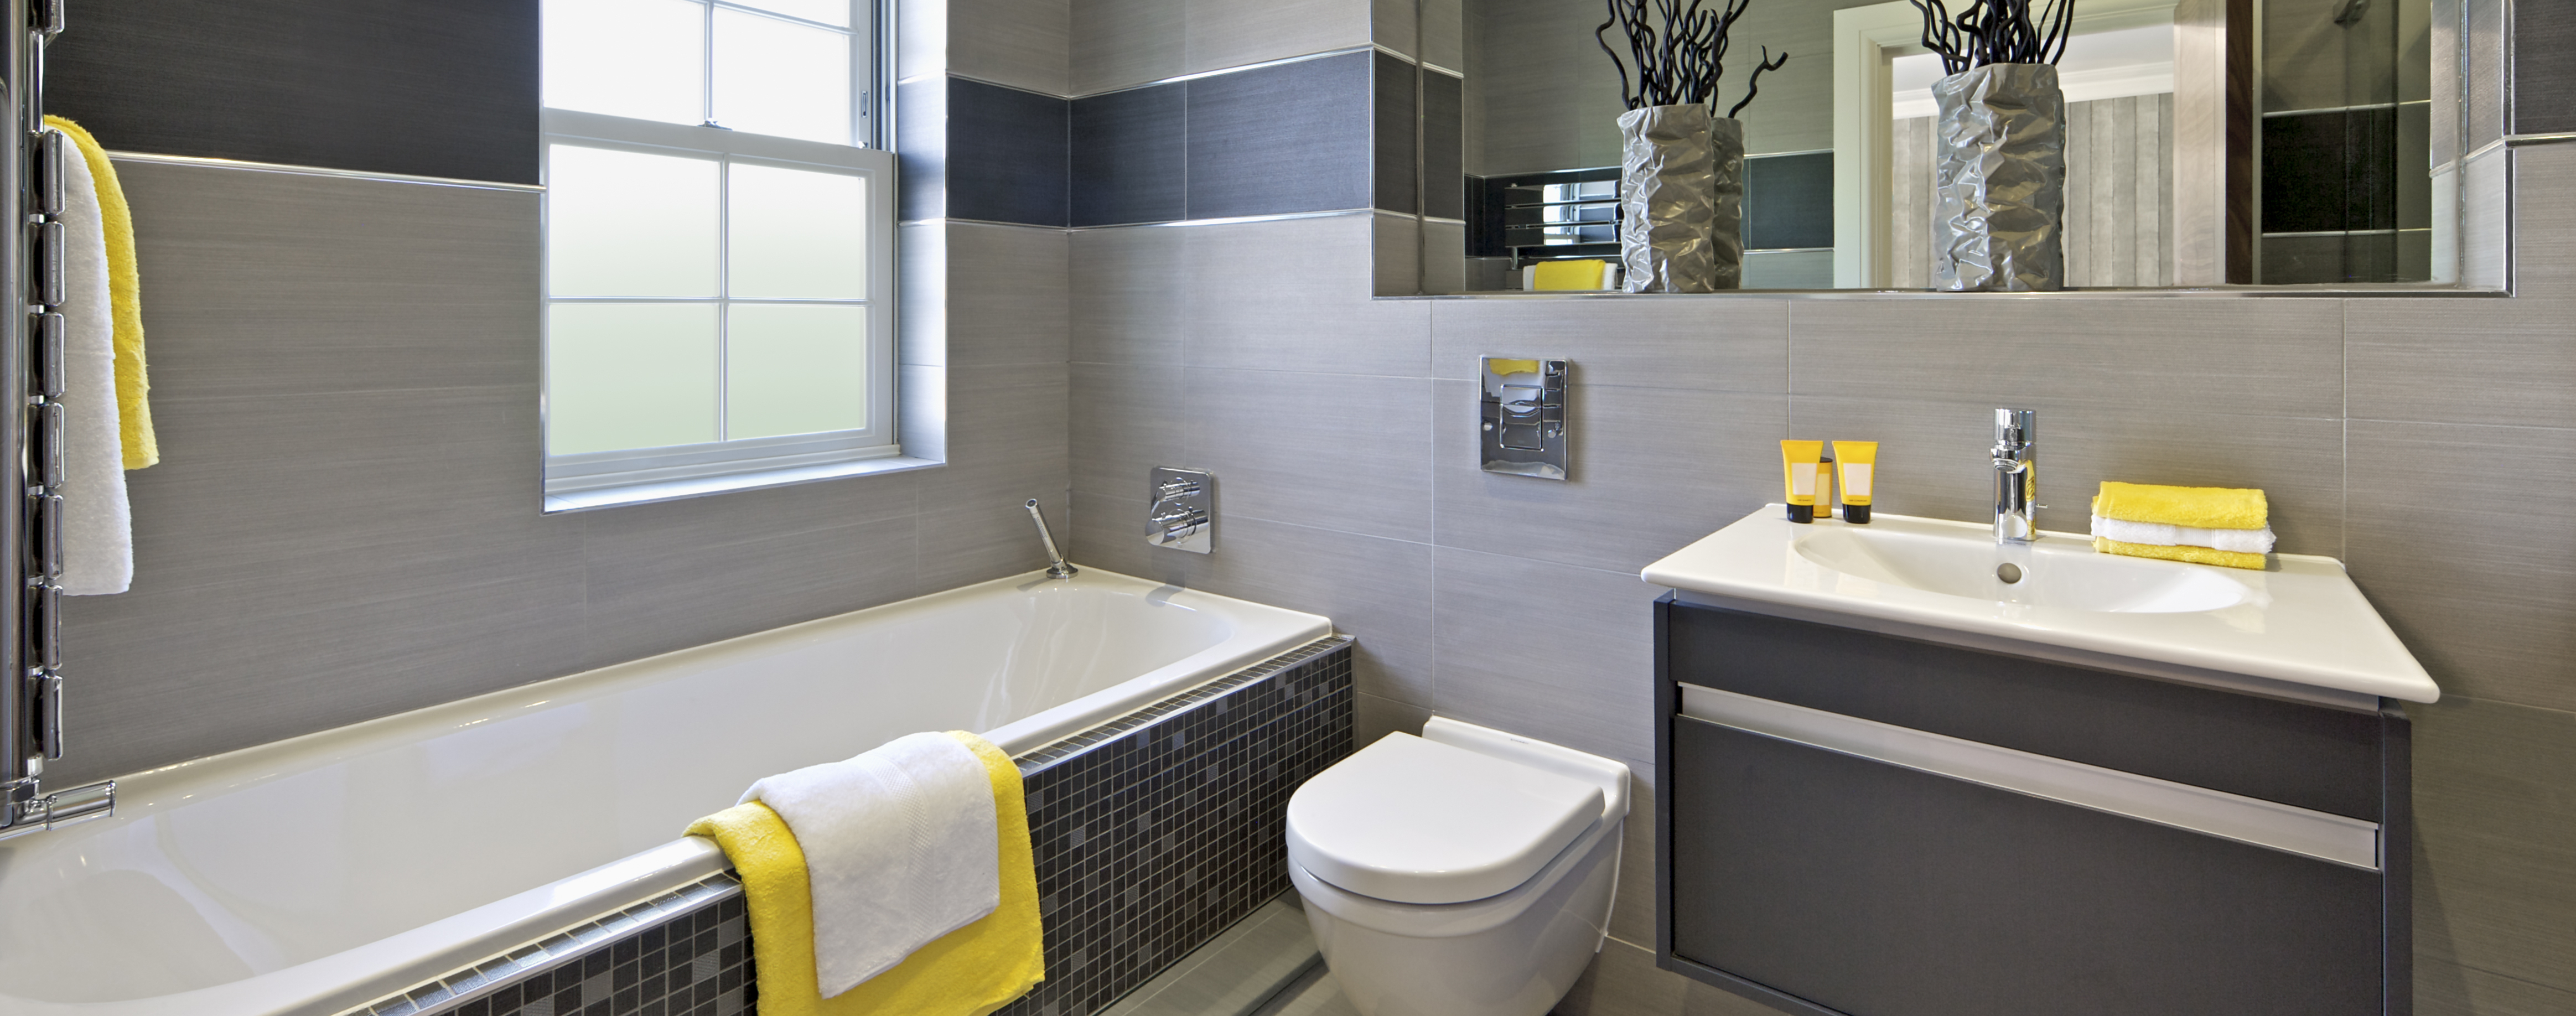 Bathroom Remodeling Toms River Nj remodeling nj throughout design decorating